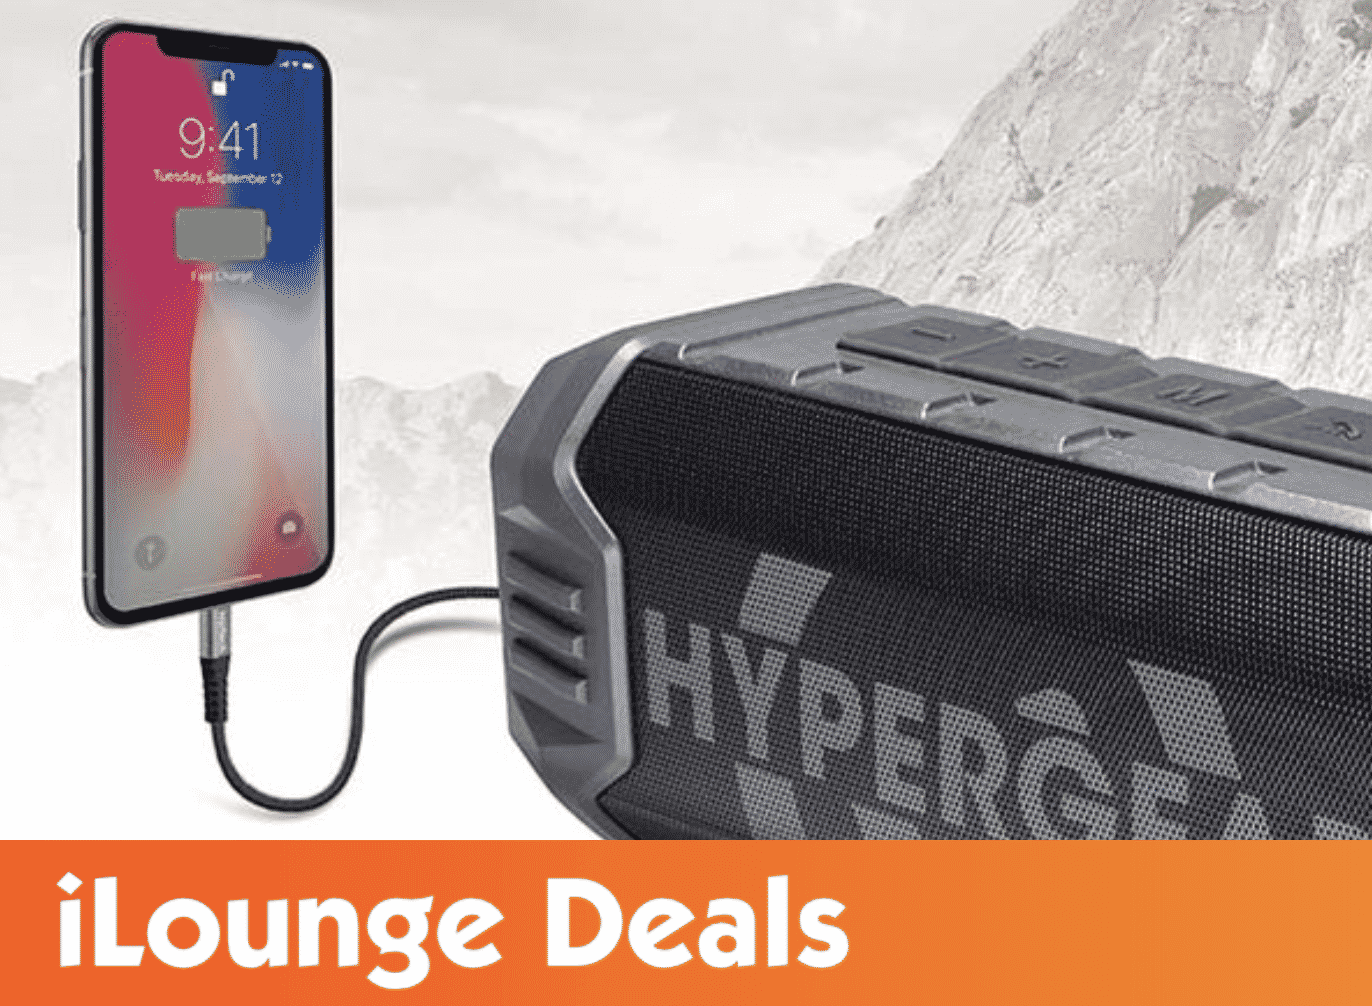 HyperGear Quake Wireless Speaker with Built-in Power Bank is 25% Off